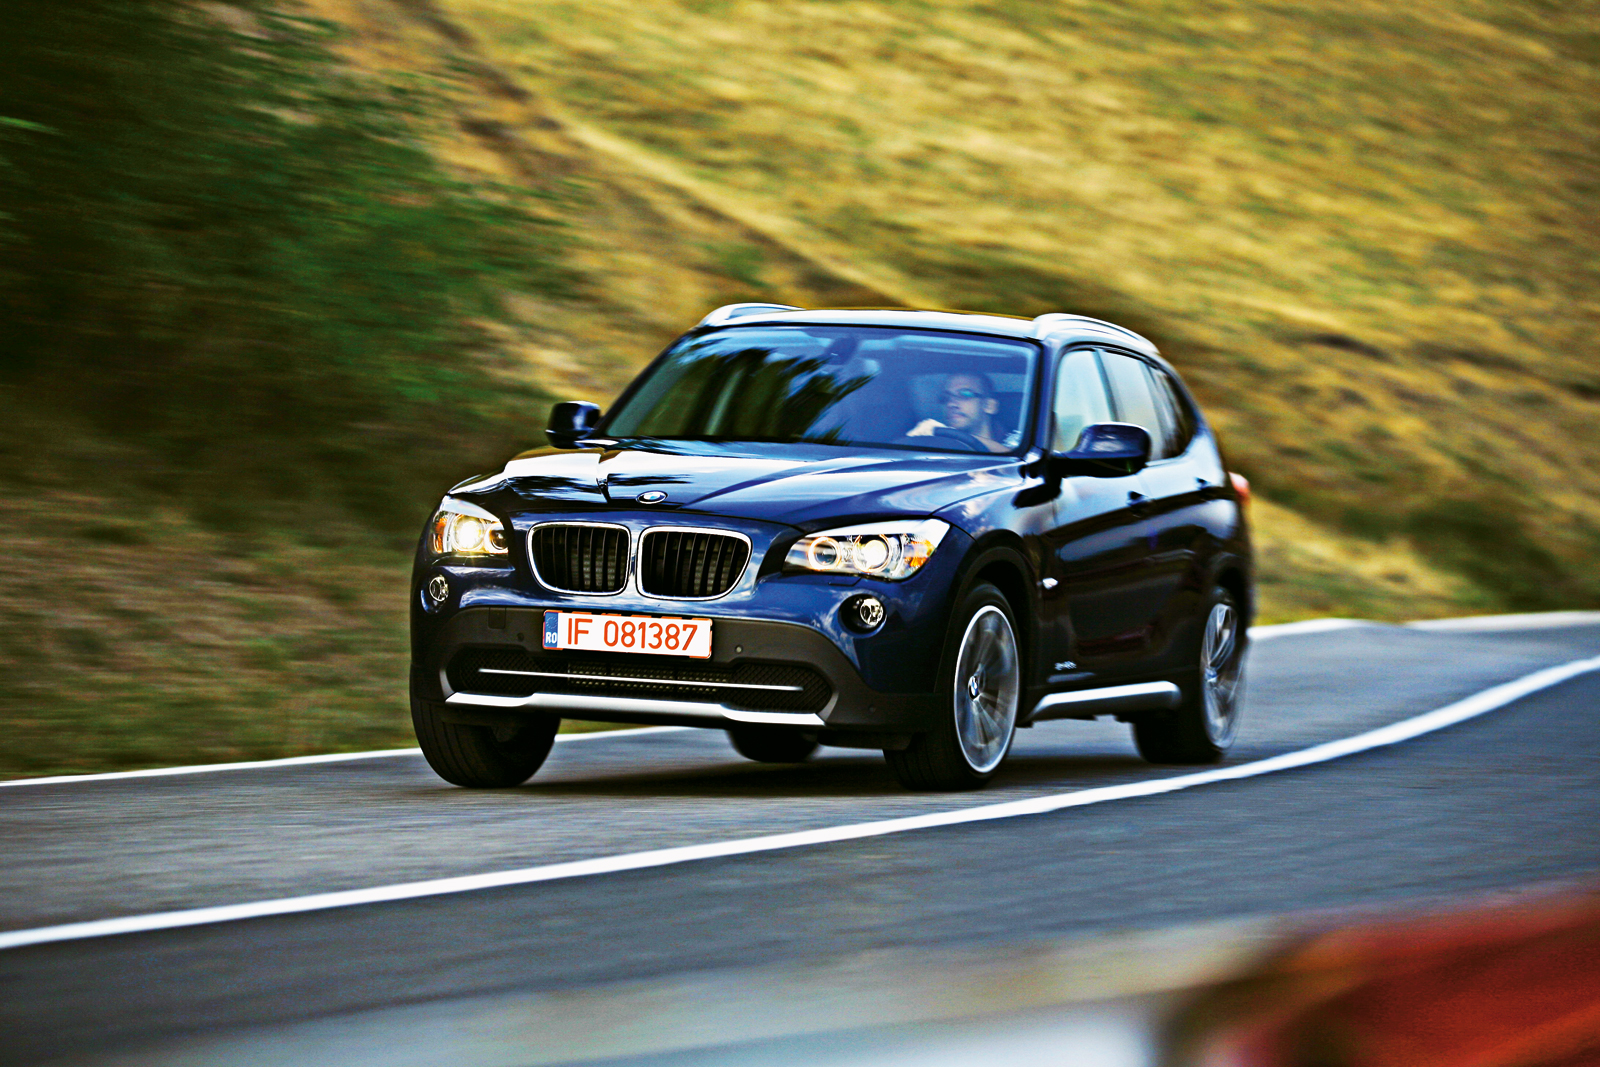 imagini bmw x1 test in ro. Black Bedroom Furniture Sets. Home Design Ideas